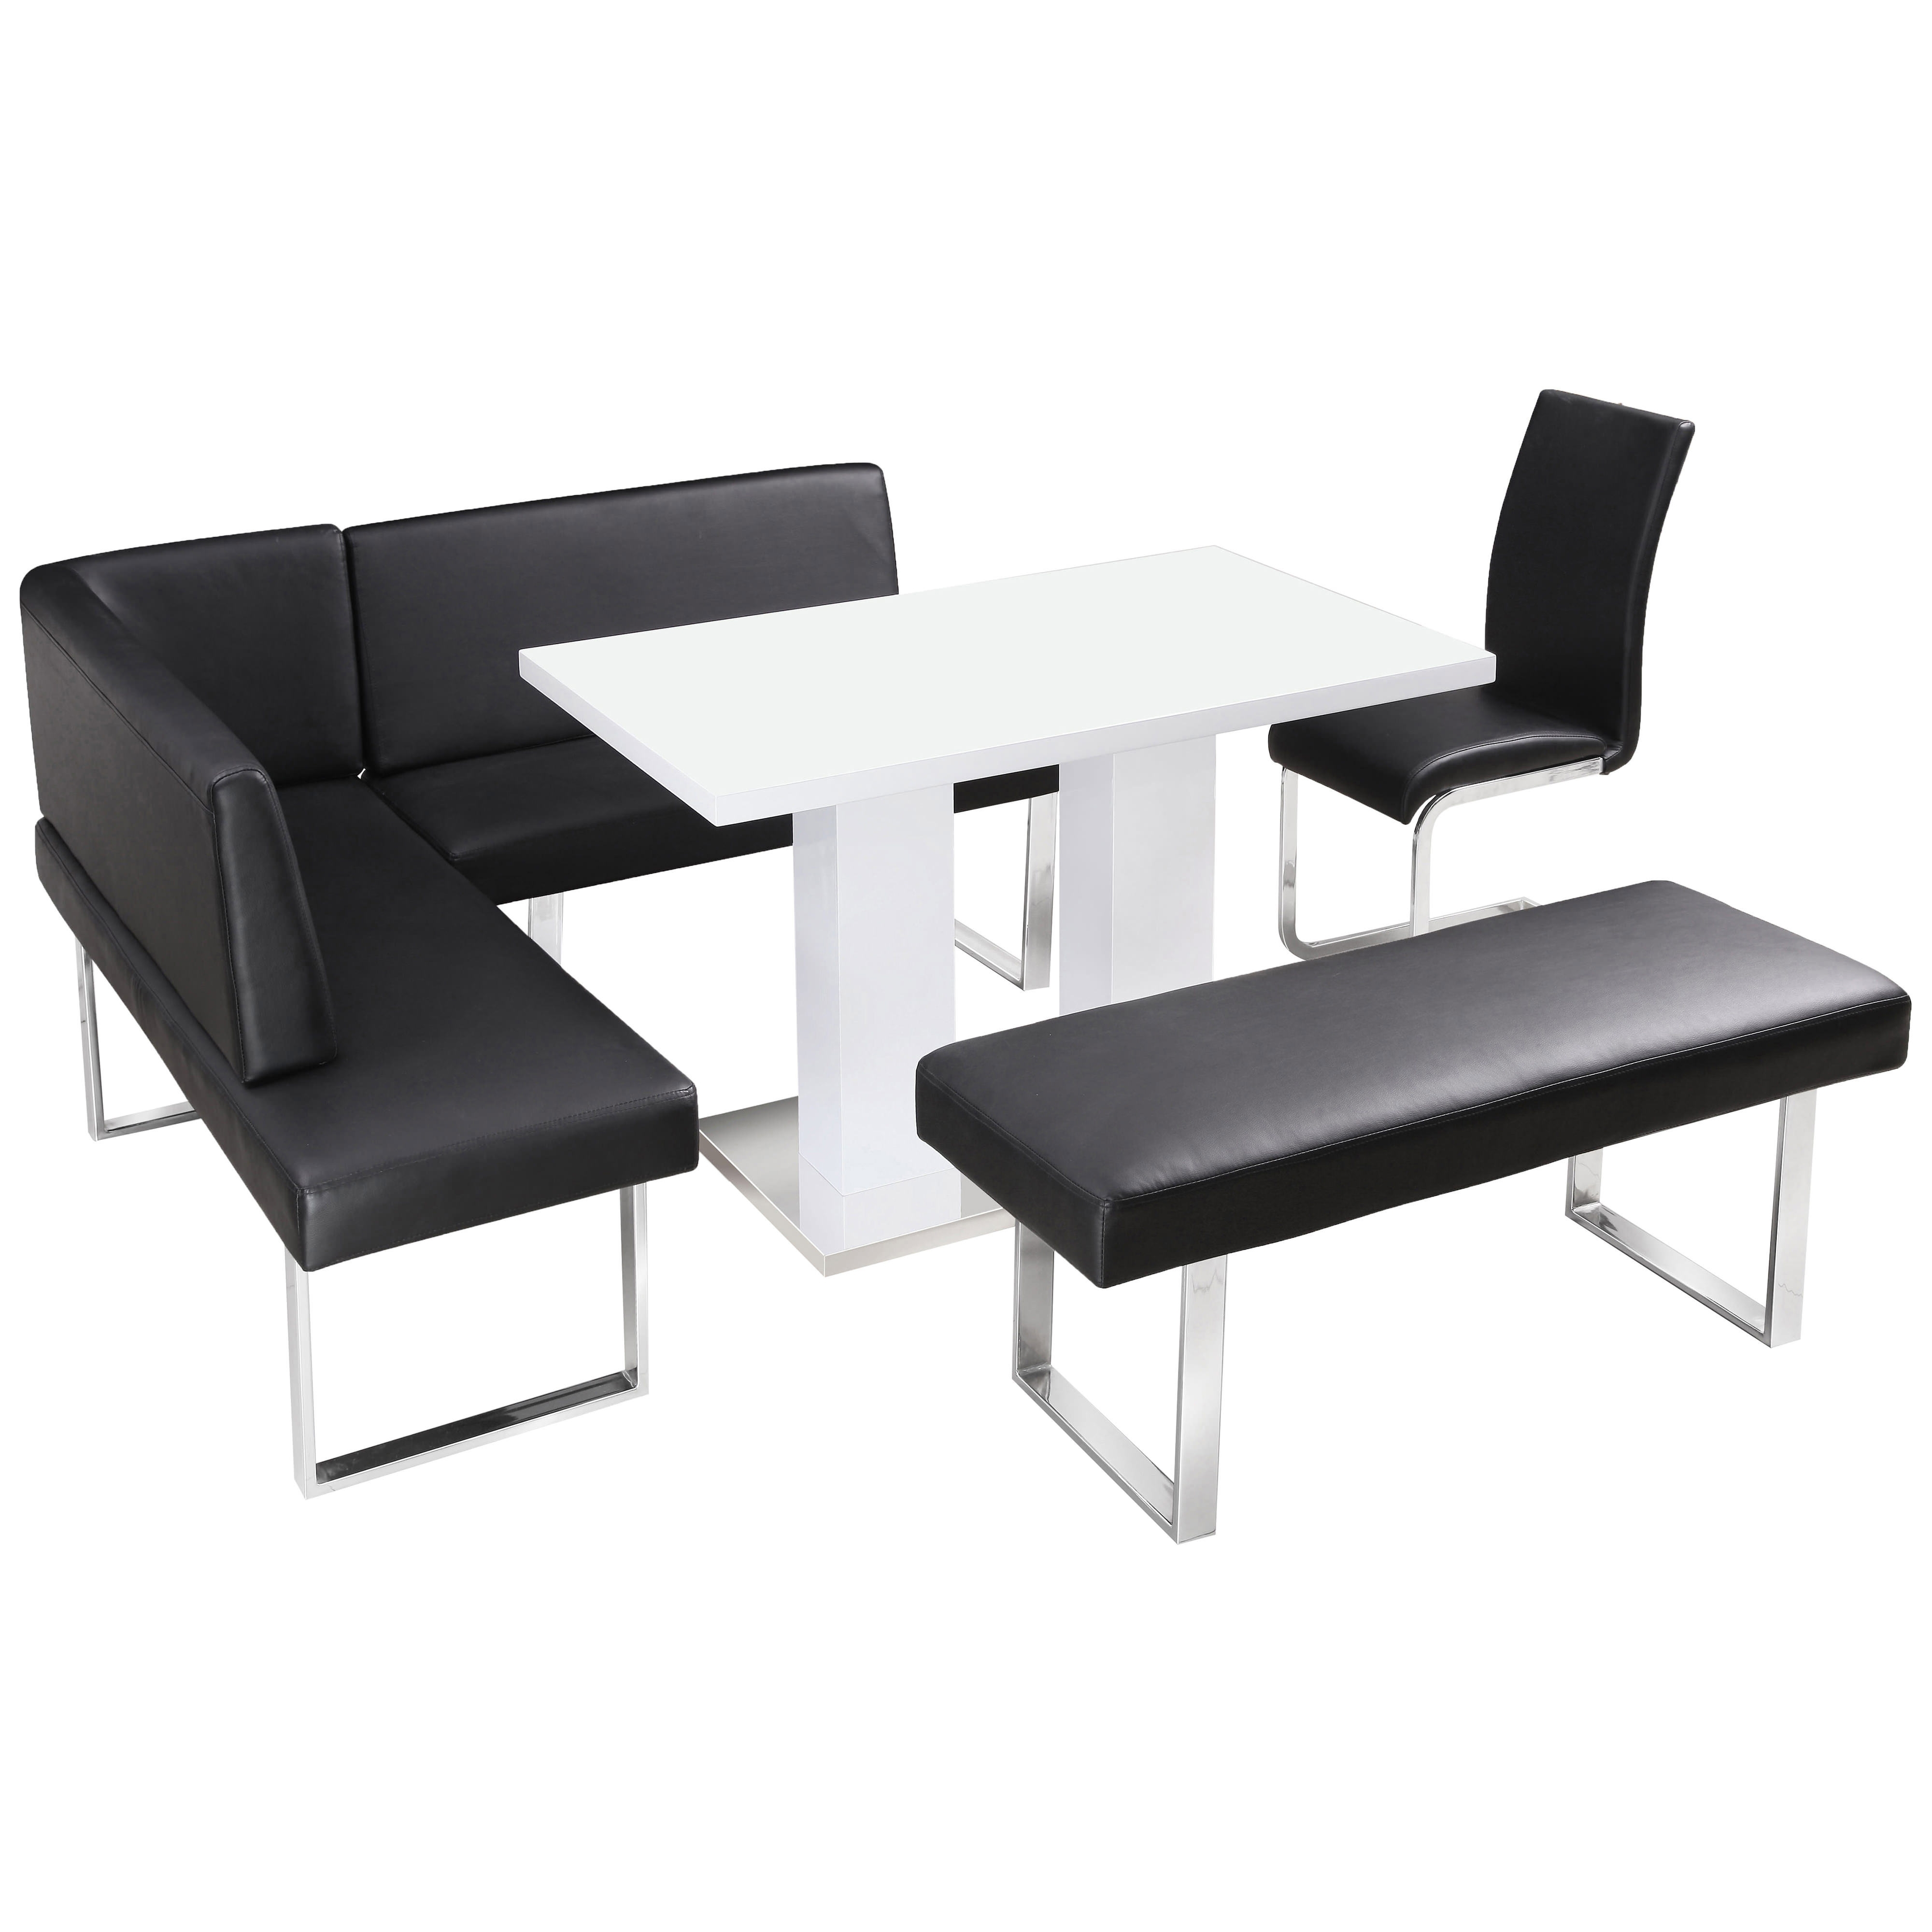 High Gloss Dining Chairs With Regard To Most Current High Gloss Dining Table And Chair Set With Corner Bench & 1 Seat (Gallery 15 of 25)